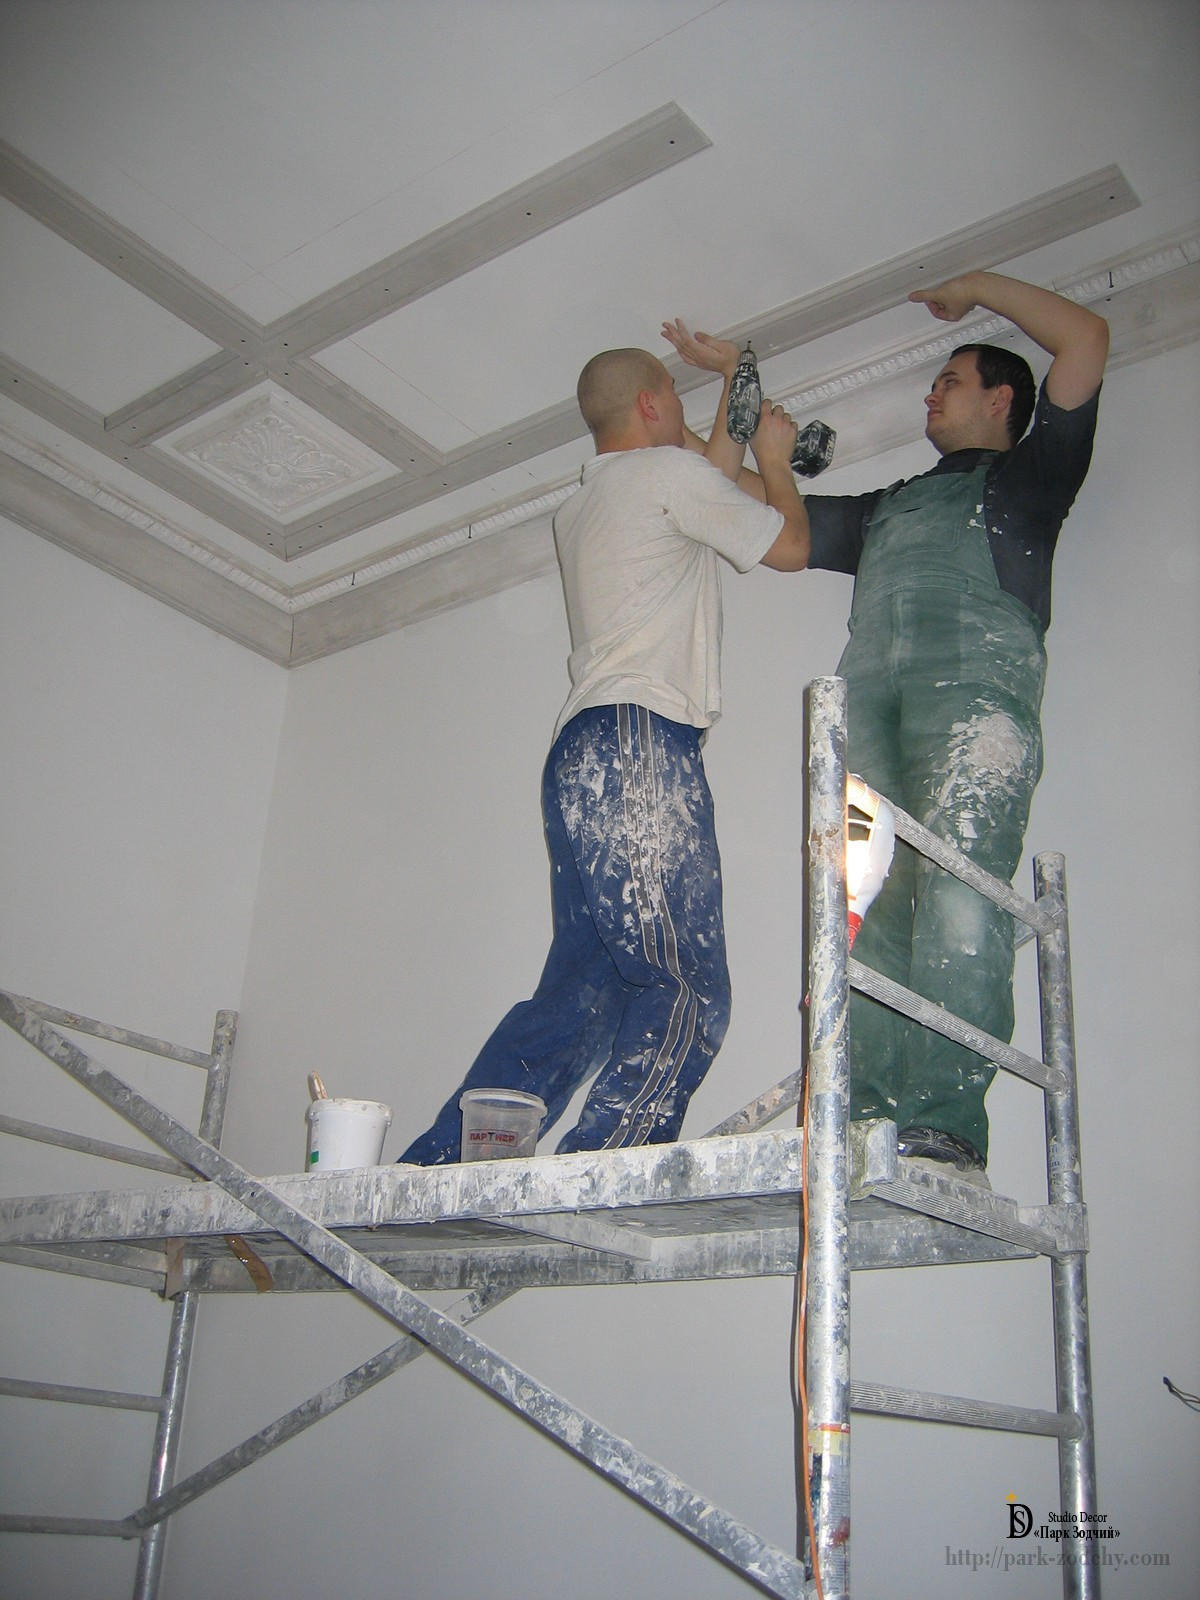 installation of plaster moldings on the ceiling